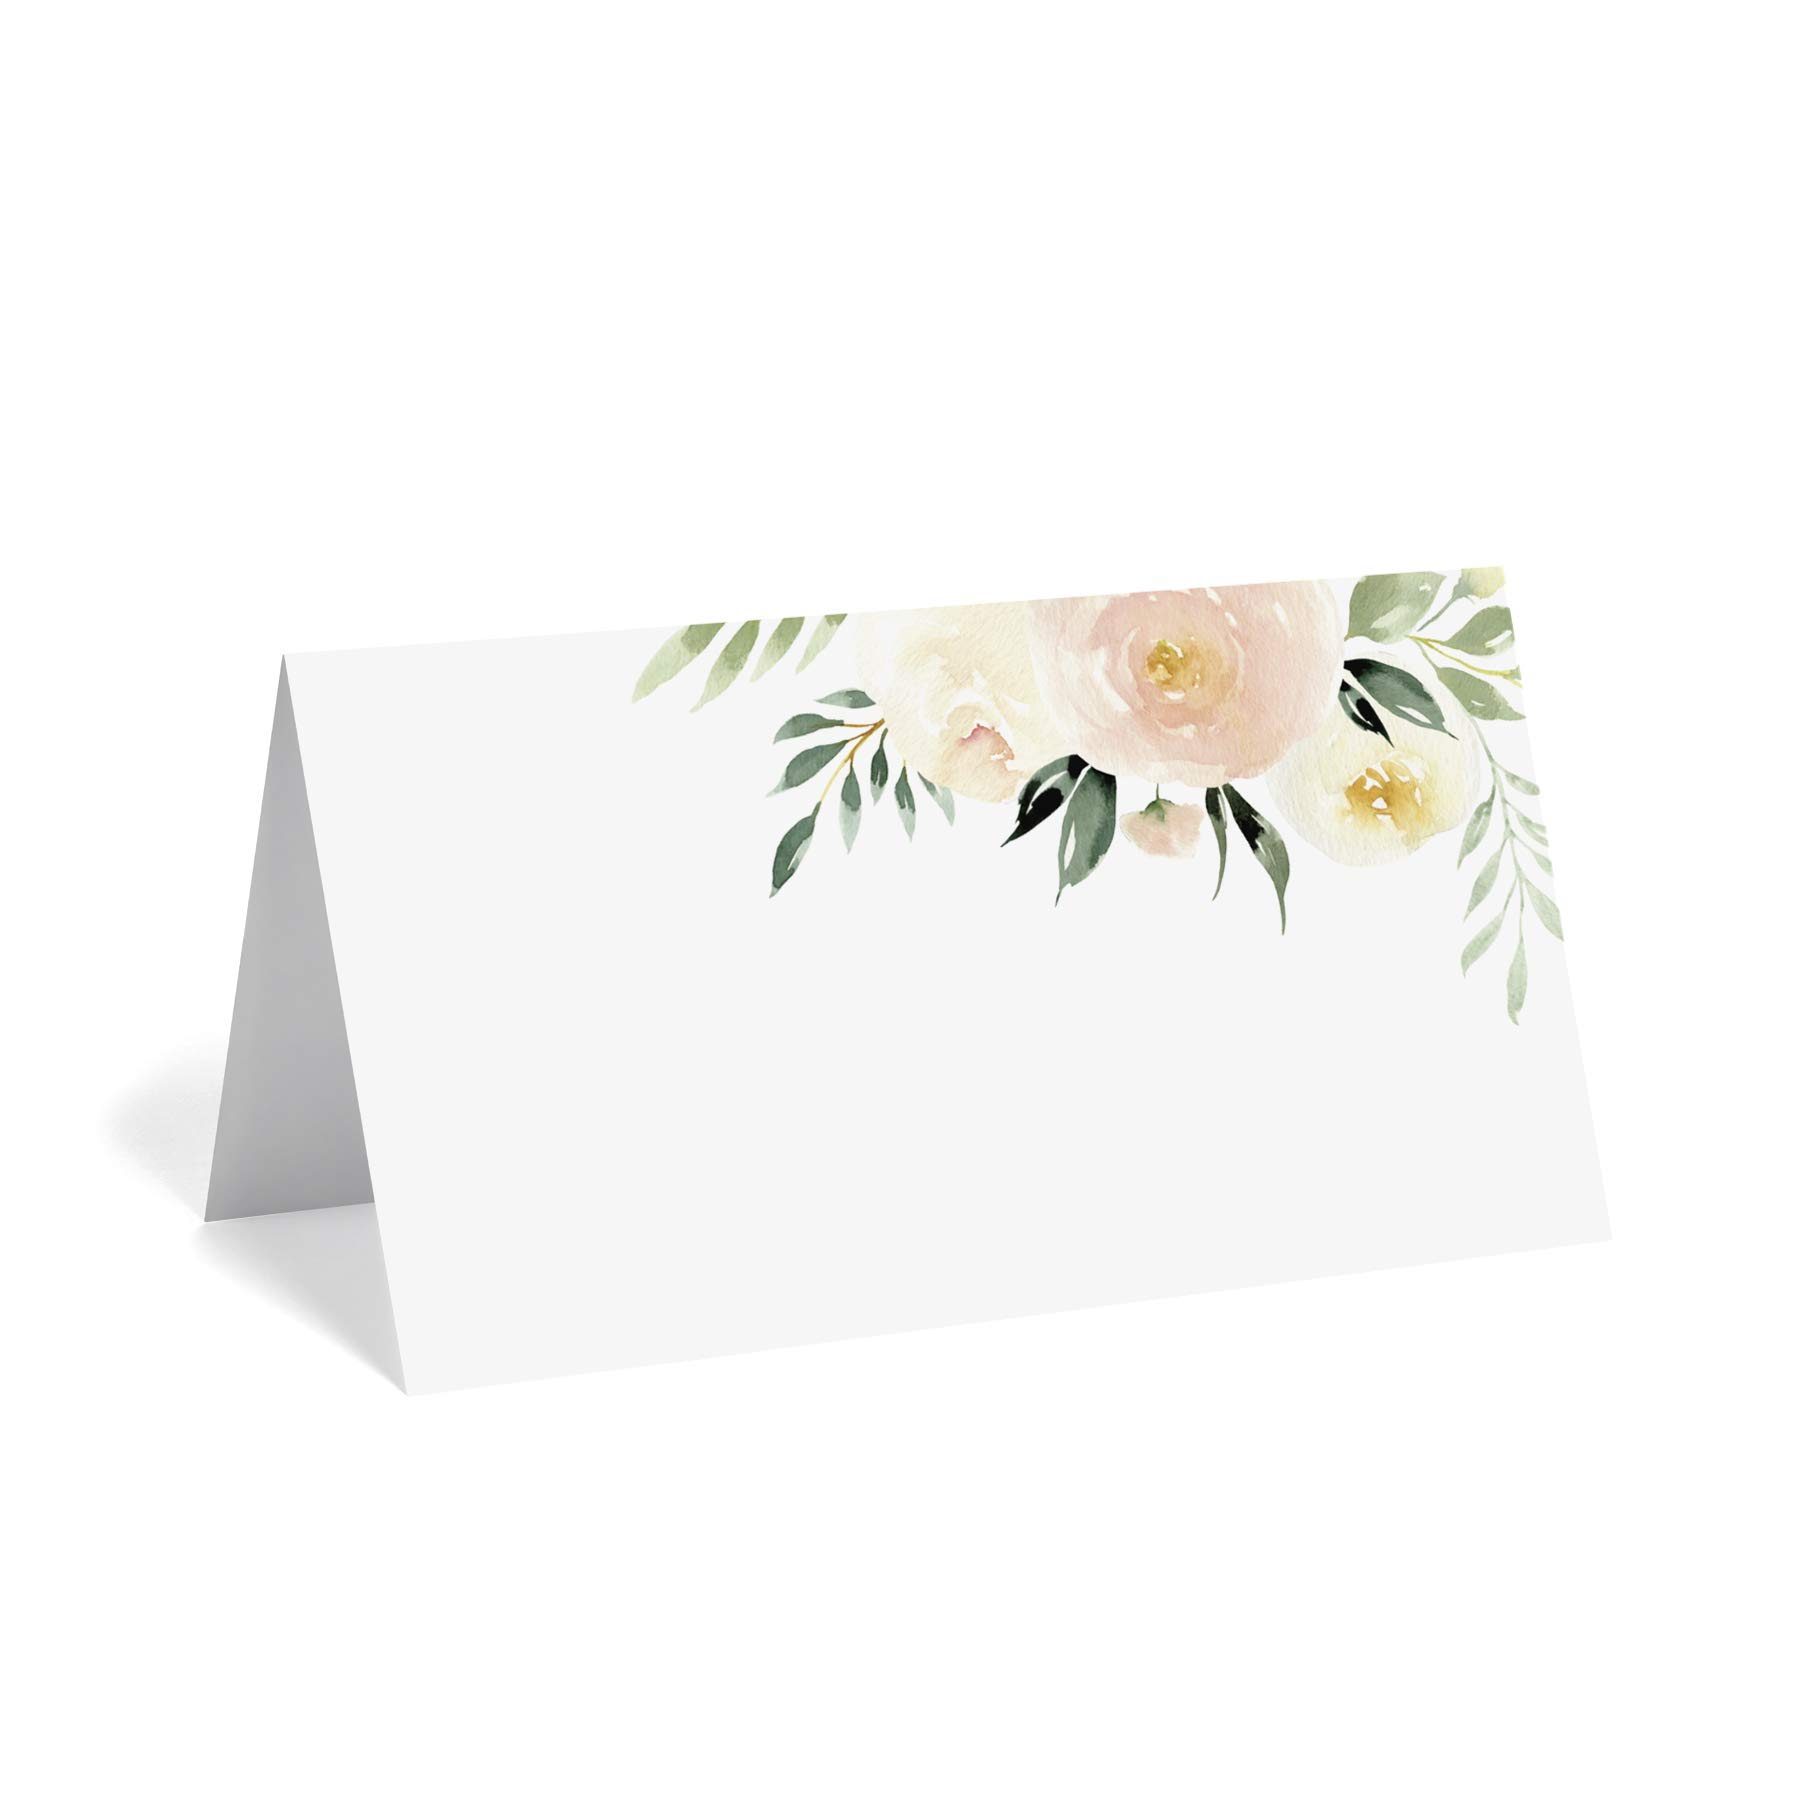 Floral Place Cards for Wedding or Party, Seating Place Cards for Tables, 50 pack, scored for easy folding, Blush flower design 2 x 3.5 inches — from Bliss Paper Boutique